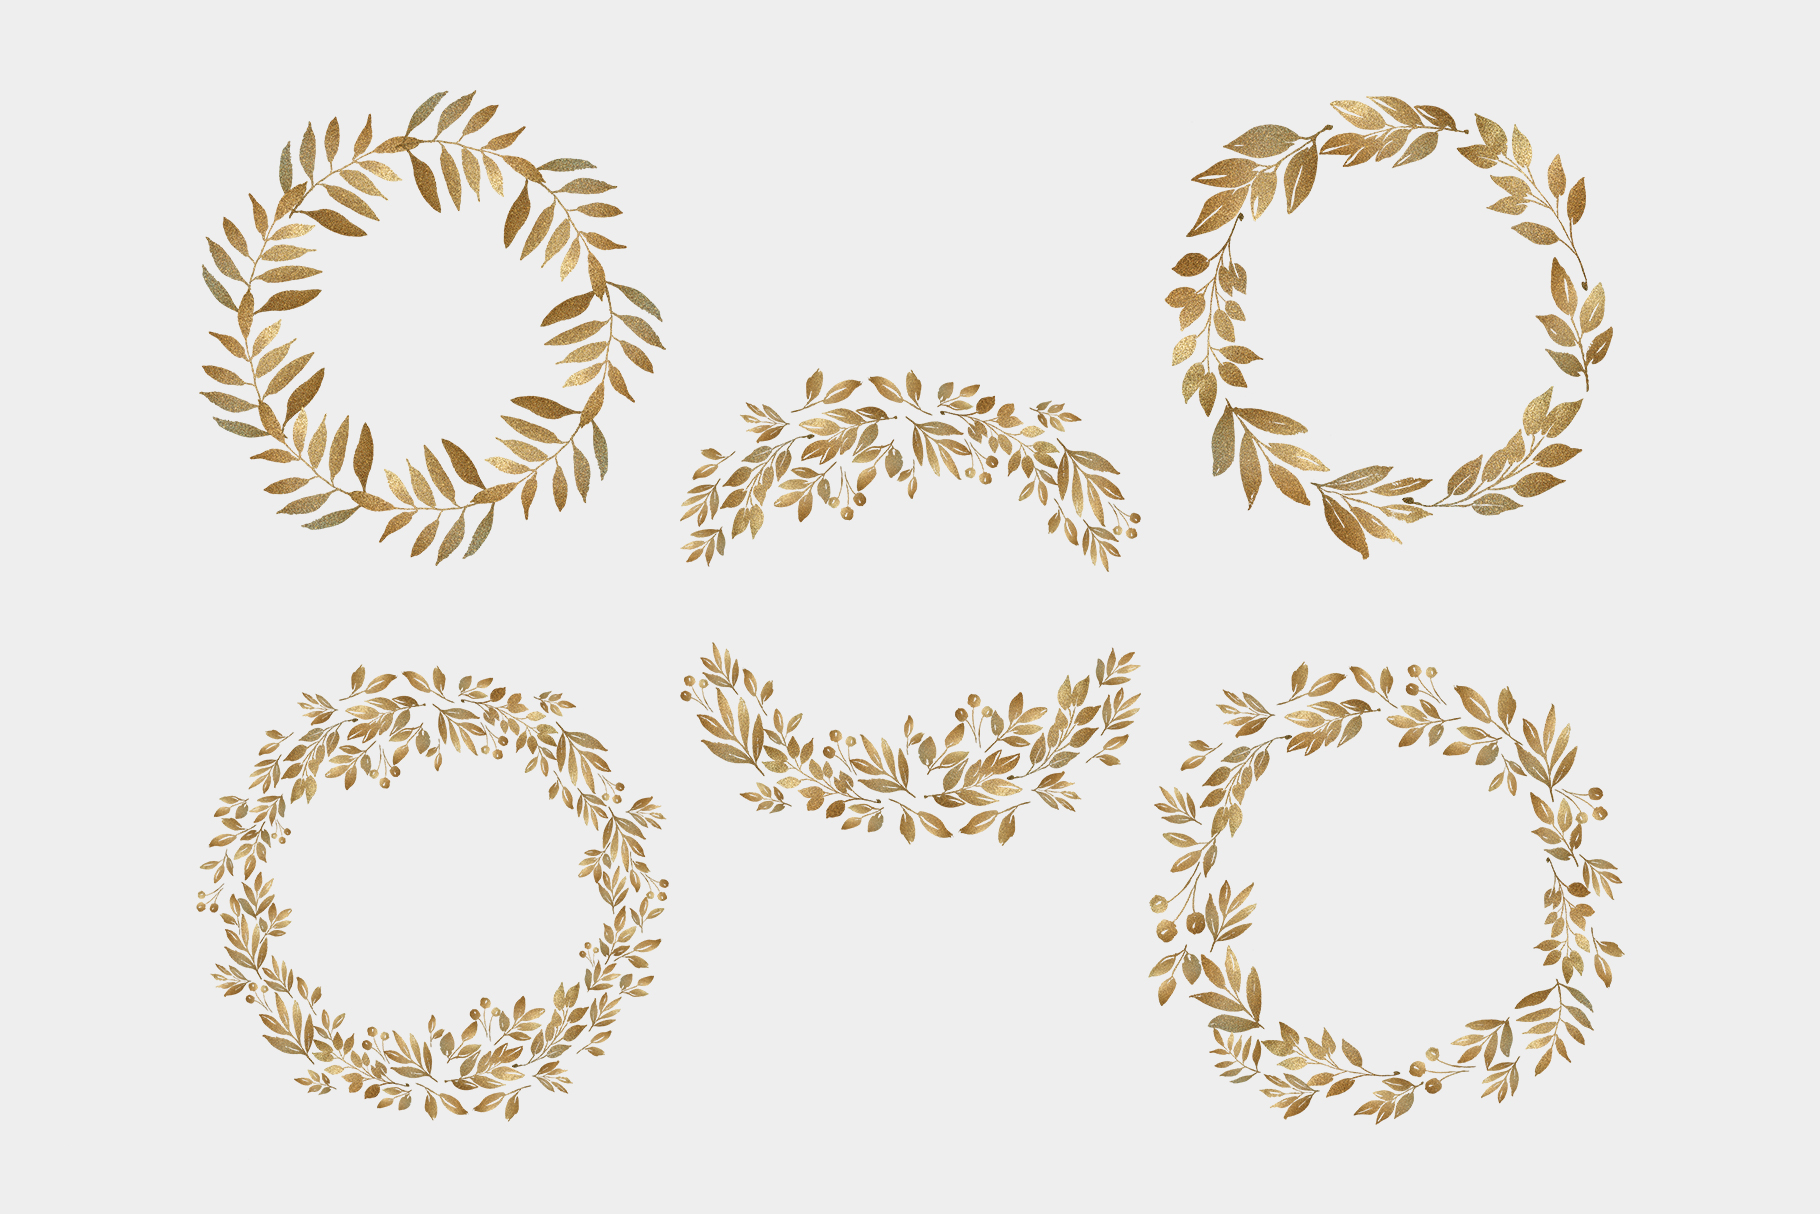 Gold leaves and wreaths, gold foil leaves clip art example image 4